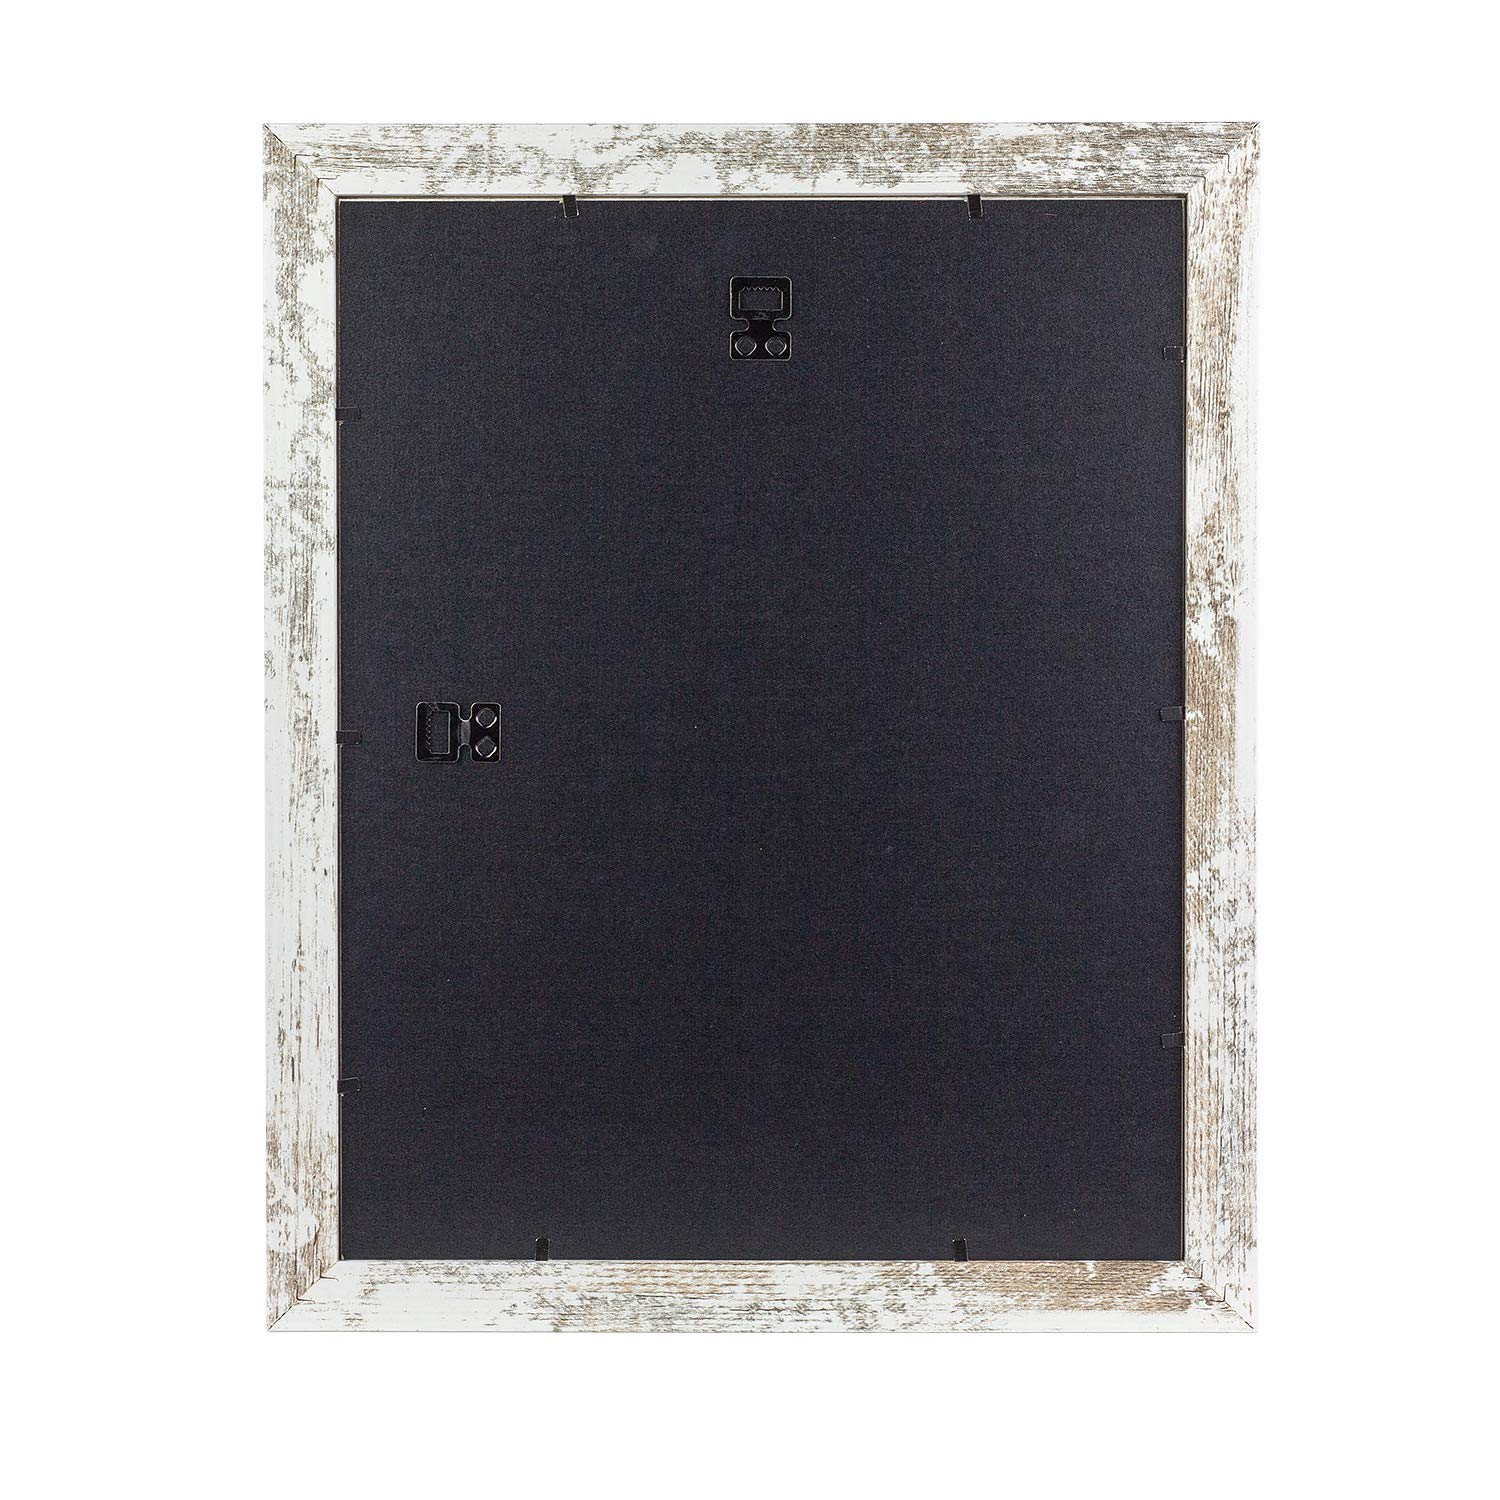 Home&Me 11x14 Picture Frame Rotten White 2 Pack - Made to Display Pictures 8x10 with Mat or 11x14 Without Mat - Wide Molding - Wall Mounting Material Included by Home&Me (Image #6)